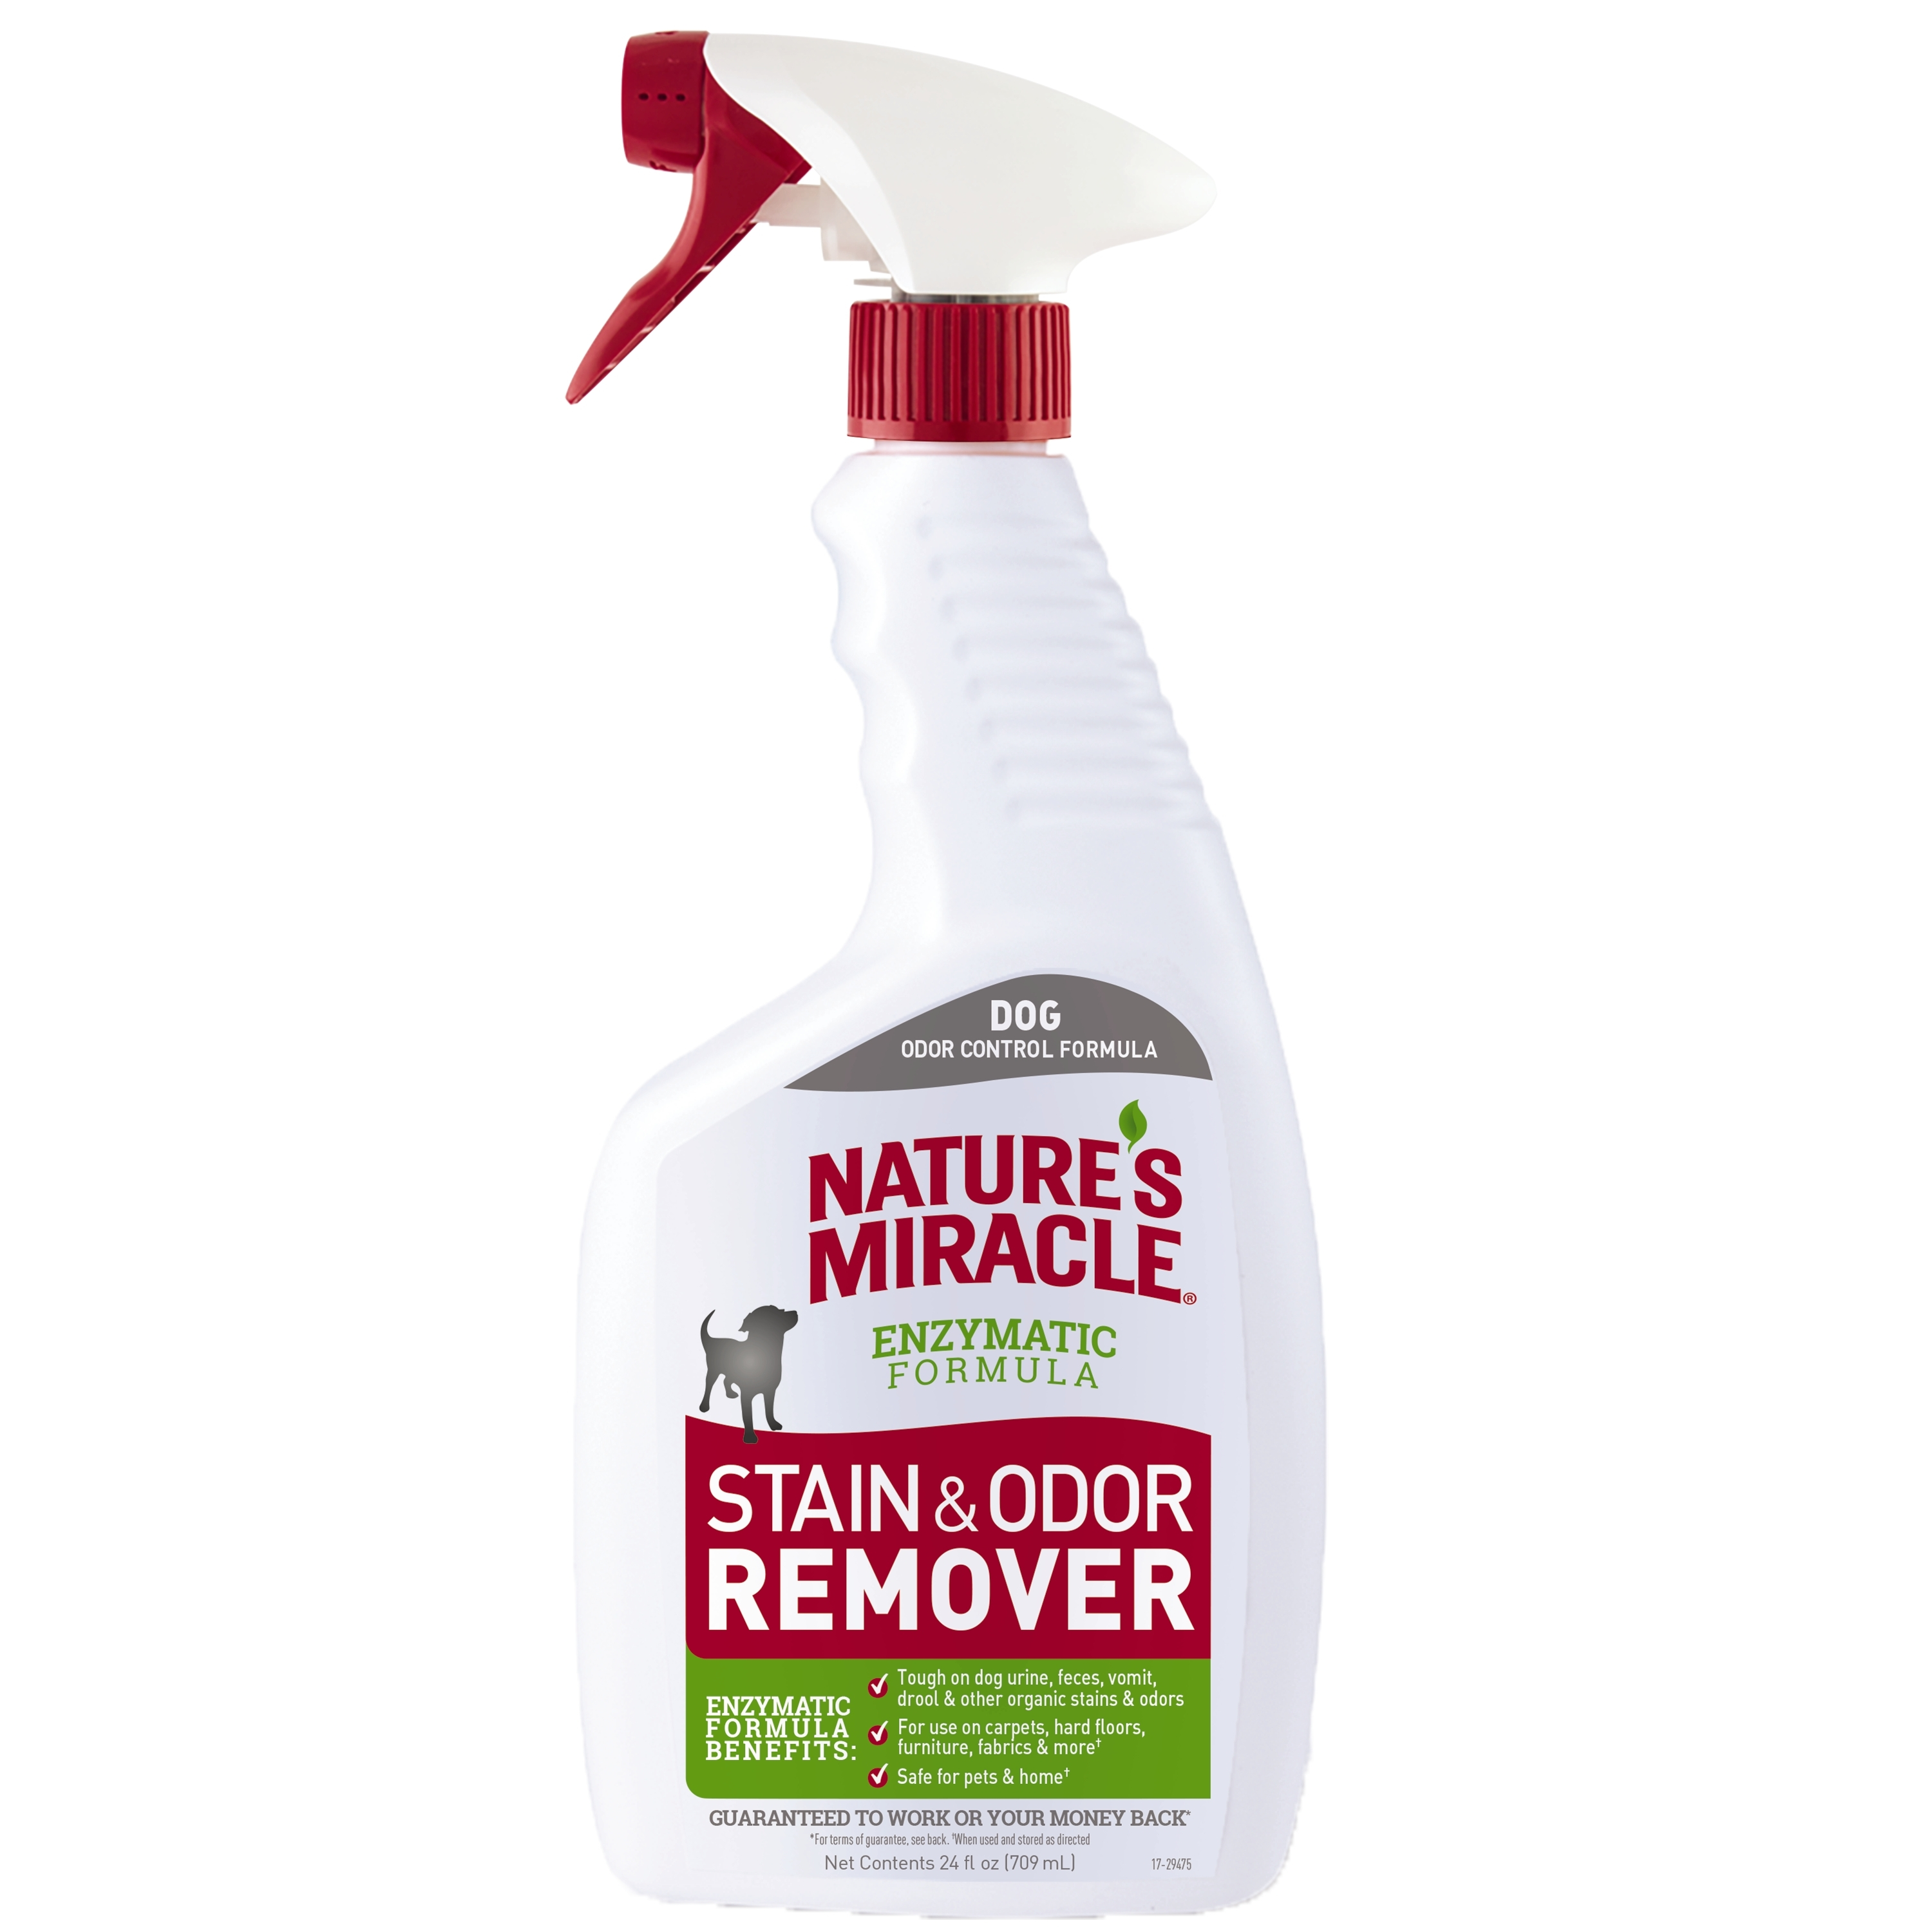 Natures Miracle Stain and Odor Remover Trigger Spray, 24oz